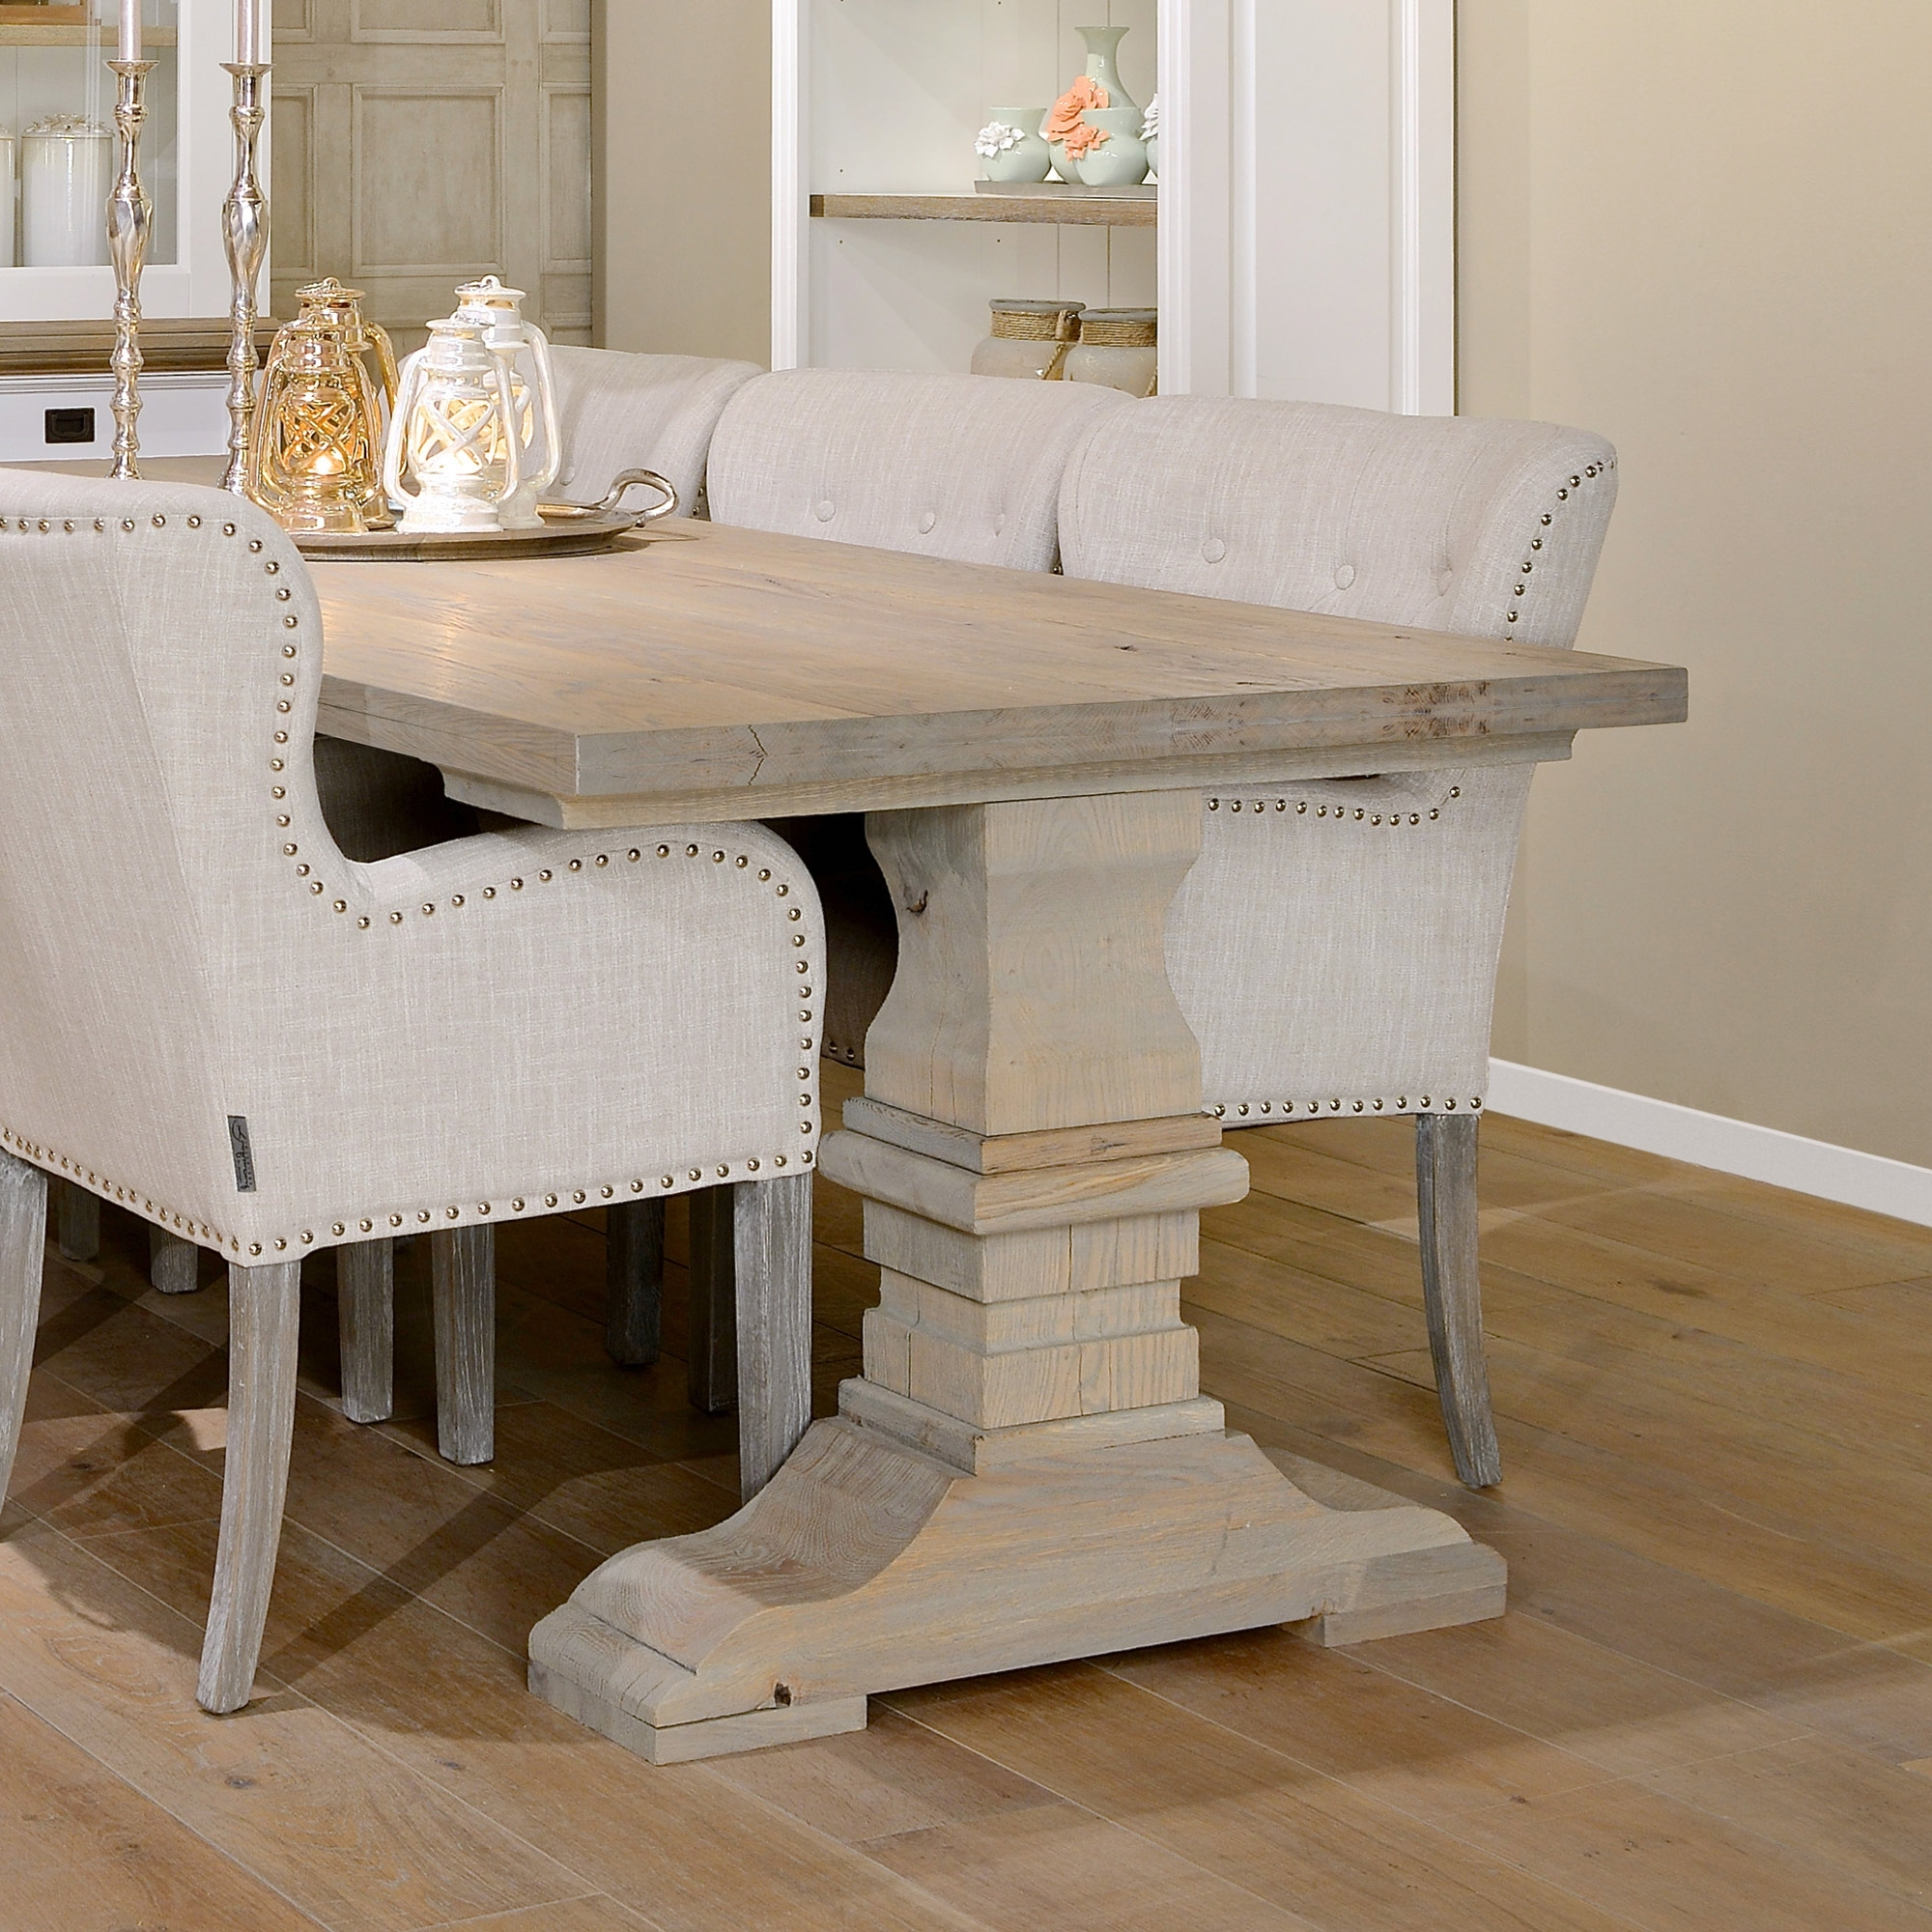 Newest Castle Oak Dining Table In Oak Dining Furniture (View 7 of 25)